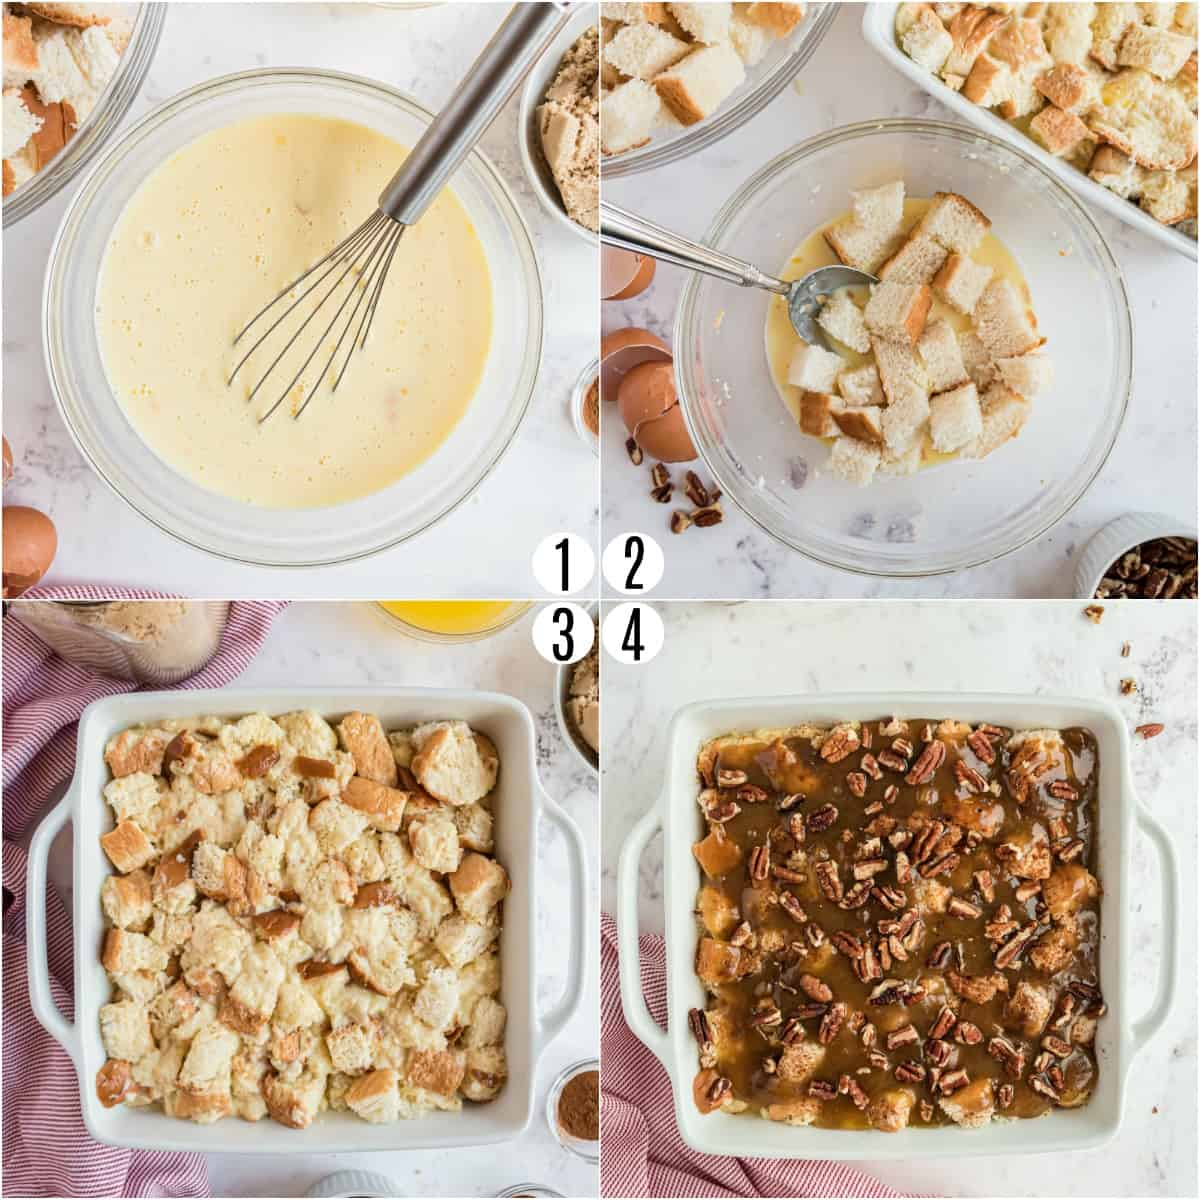 Step by step photos showing how to make eggnog french toast casserole.